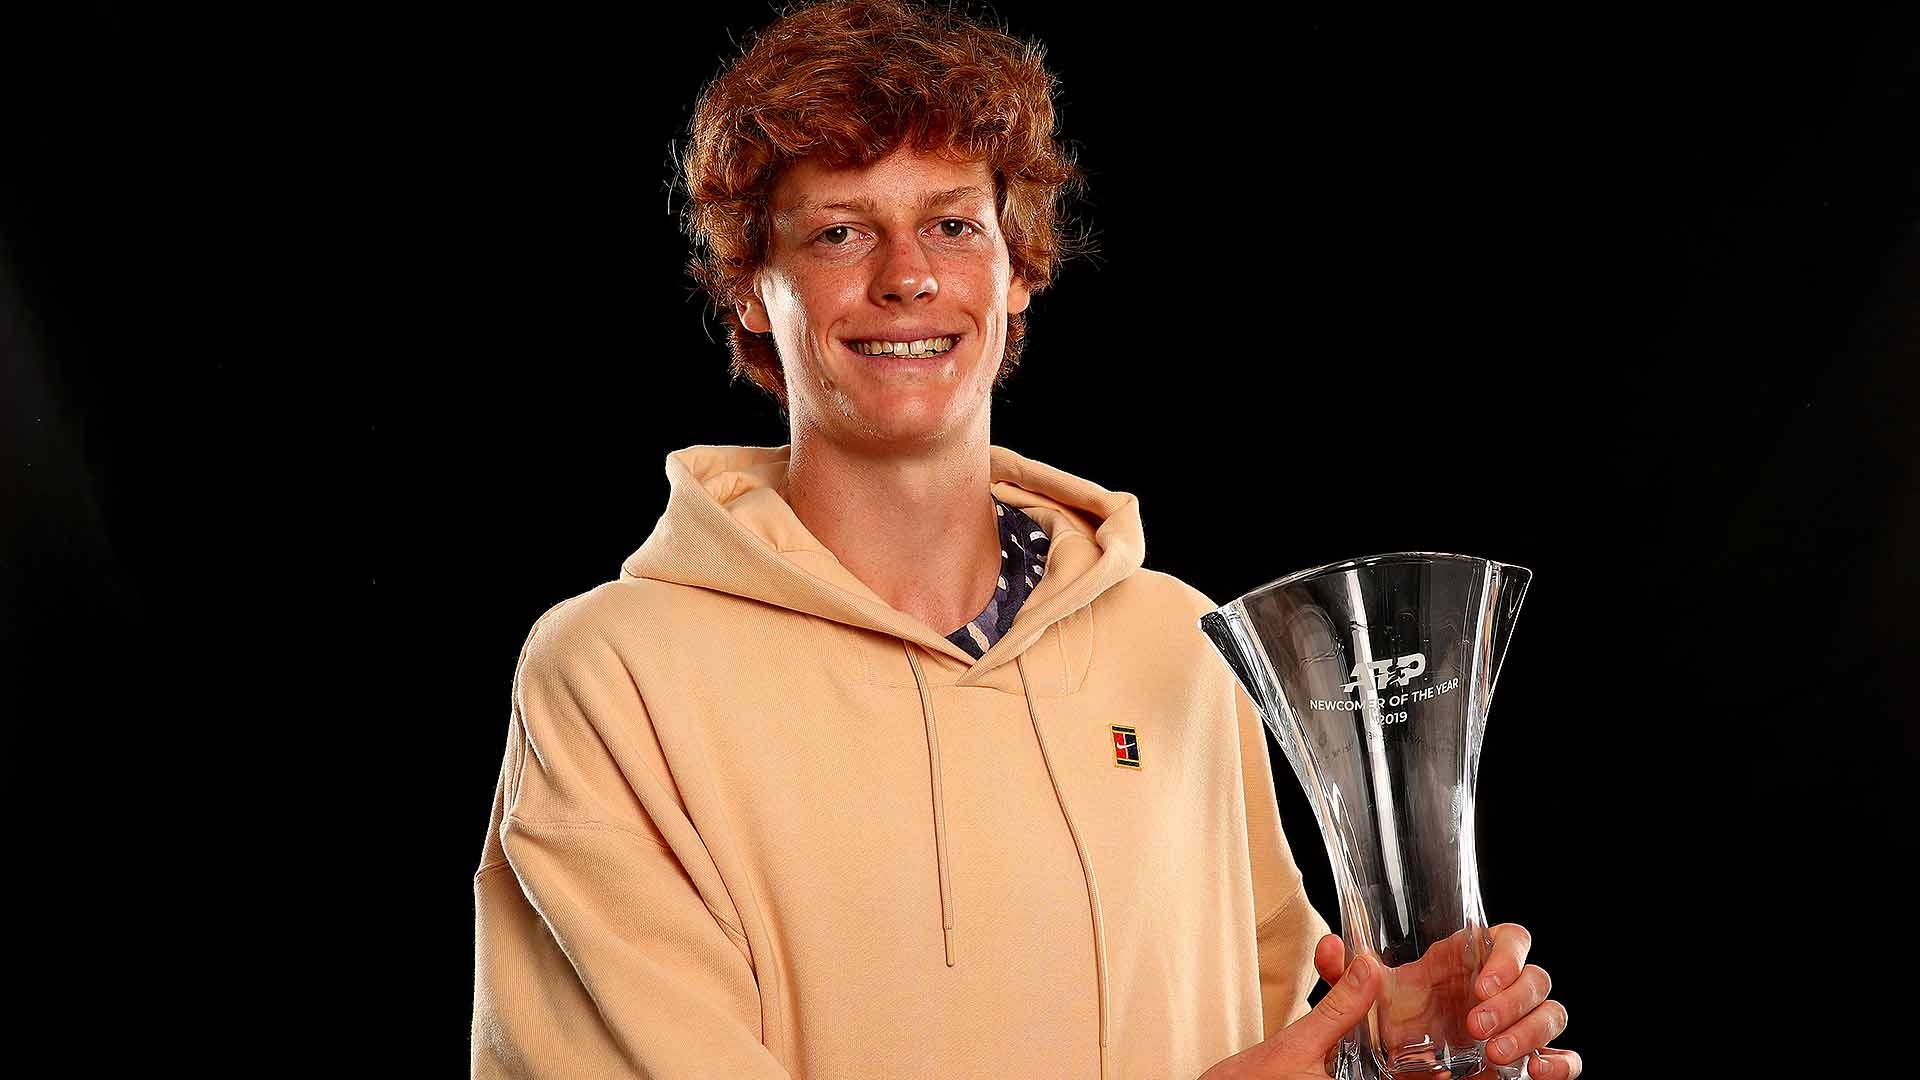 Italian Jannik Sinner receives the Newcomer of the Year in the 2019 ATP Awards.